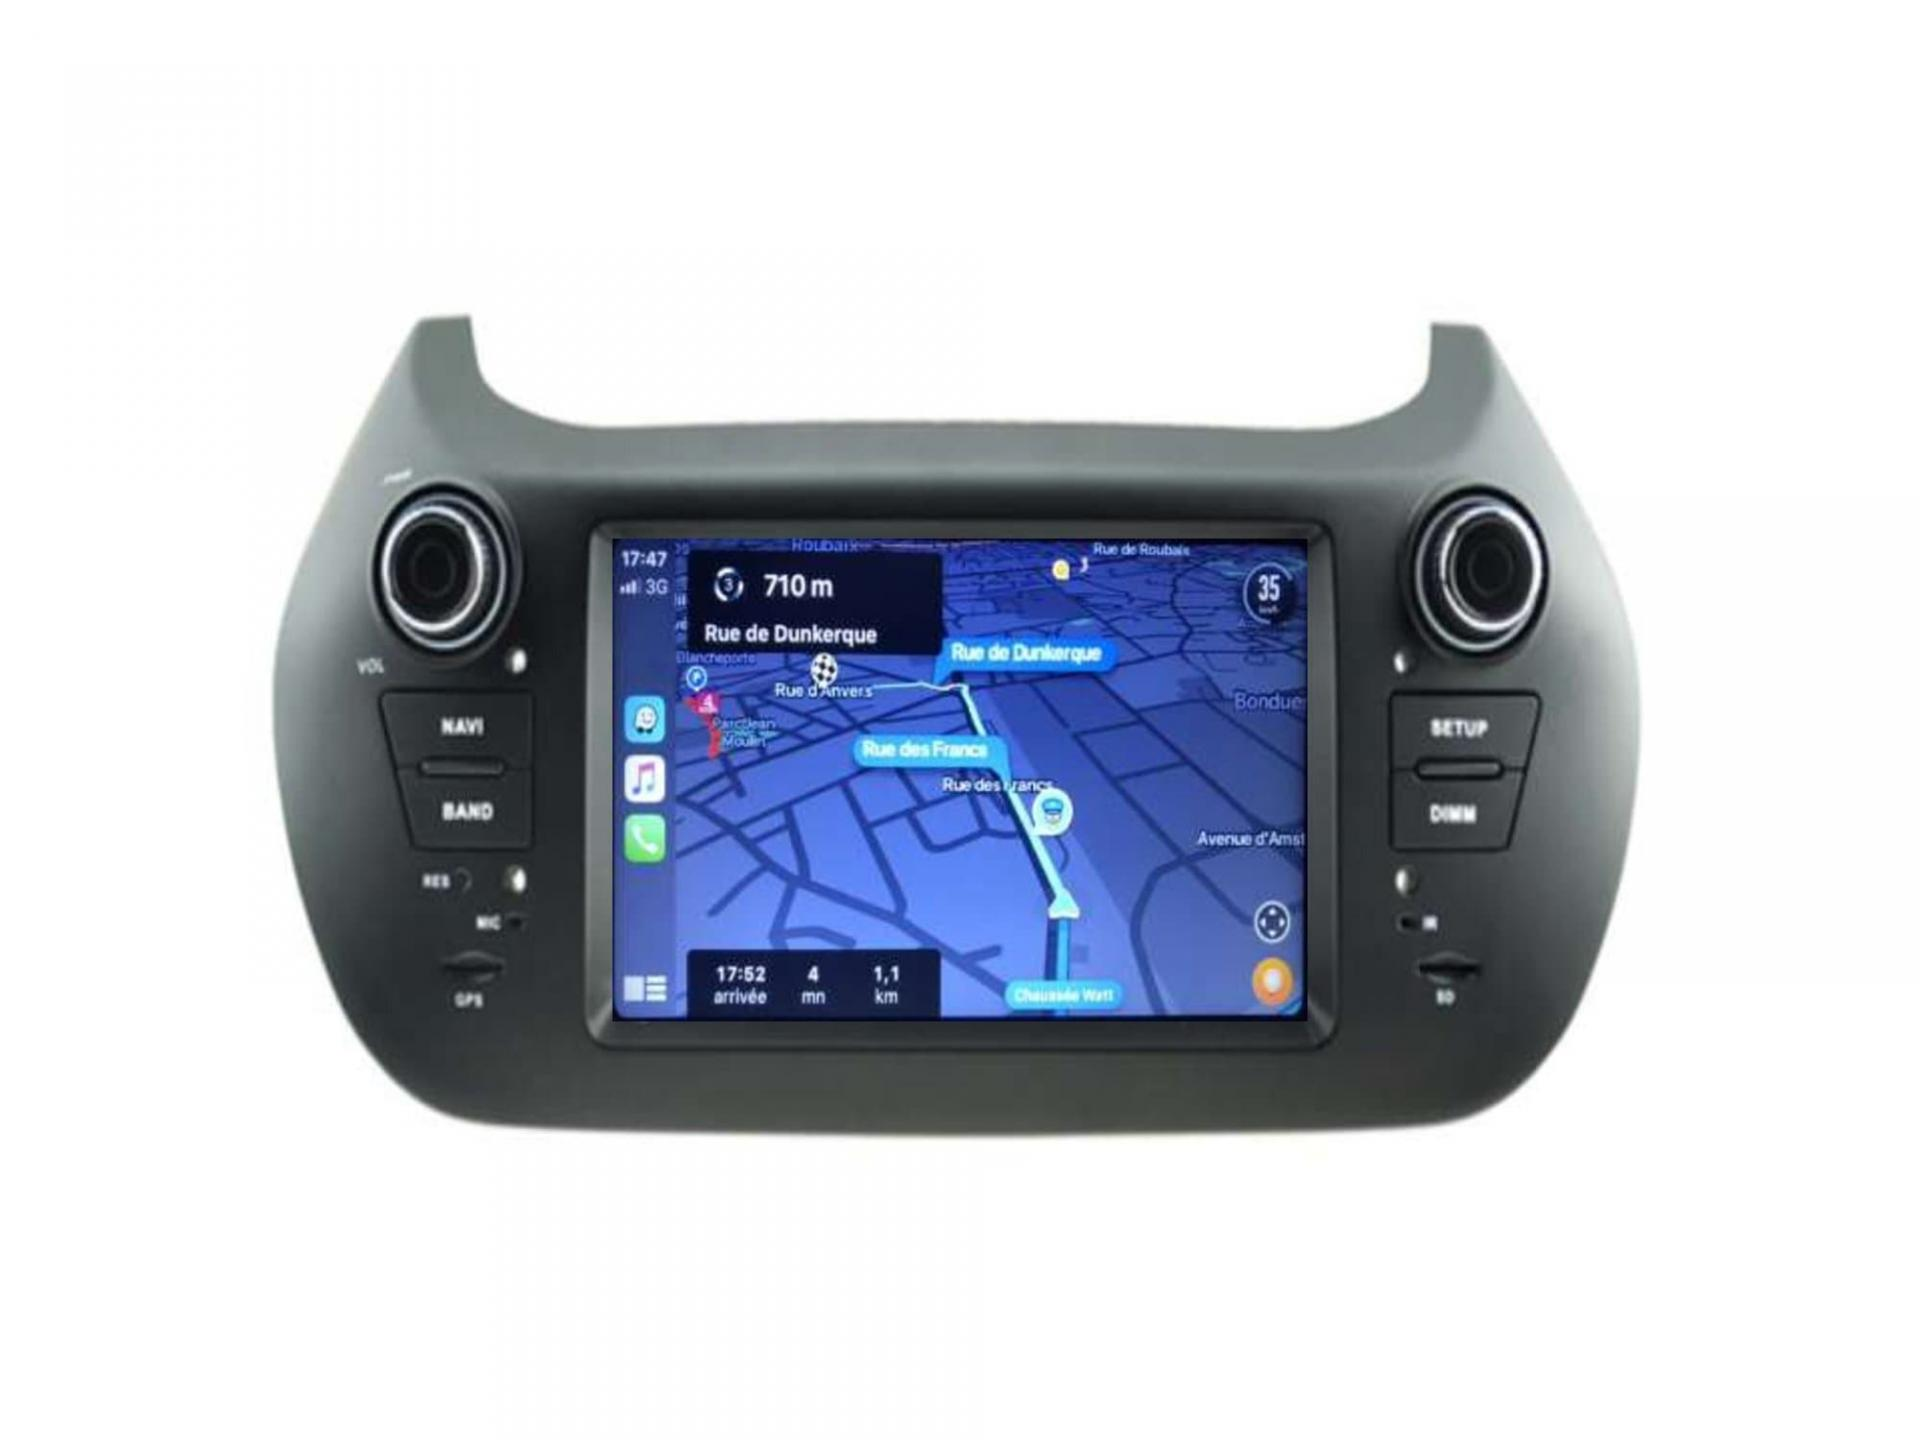 Citroen nemo peugeot bipper fiat fiorino fiat qubo bmw gps carplay android auto gps bluetooth 3